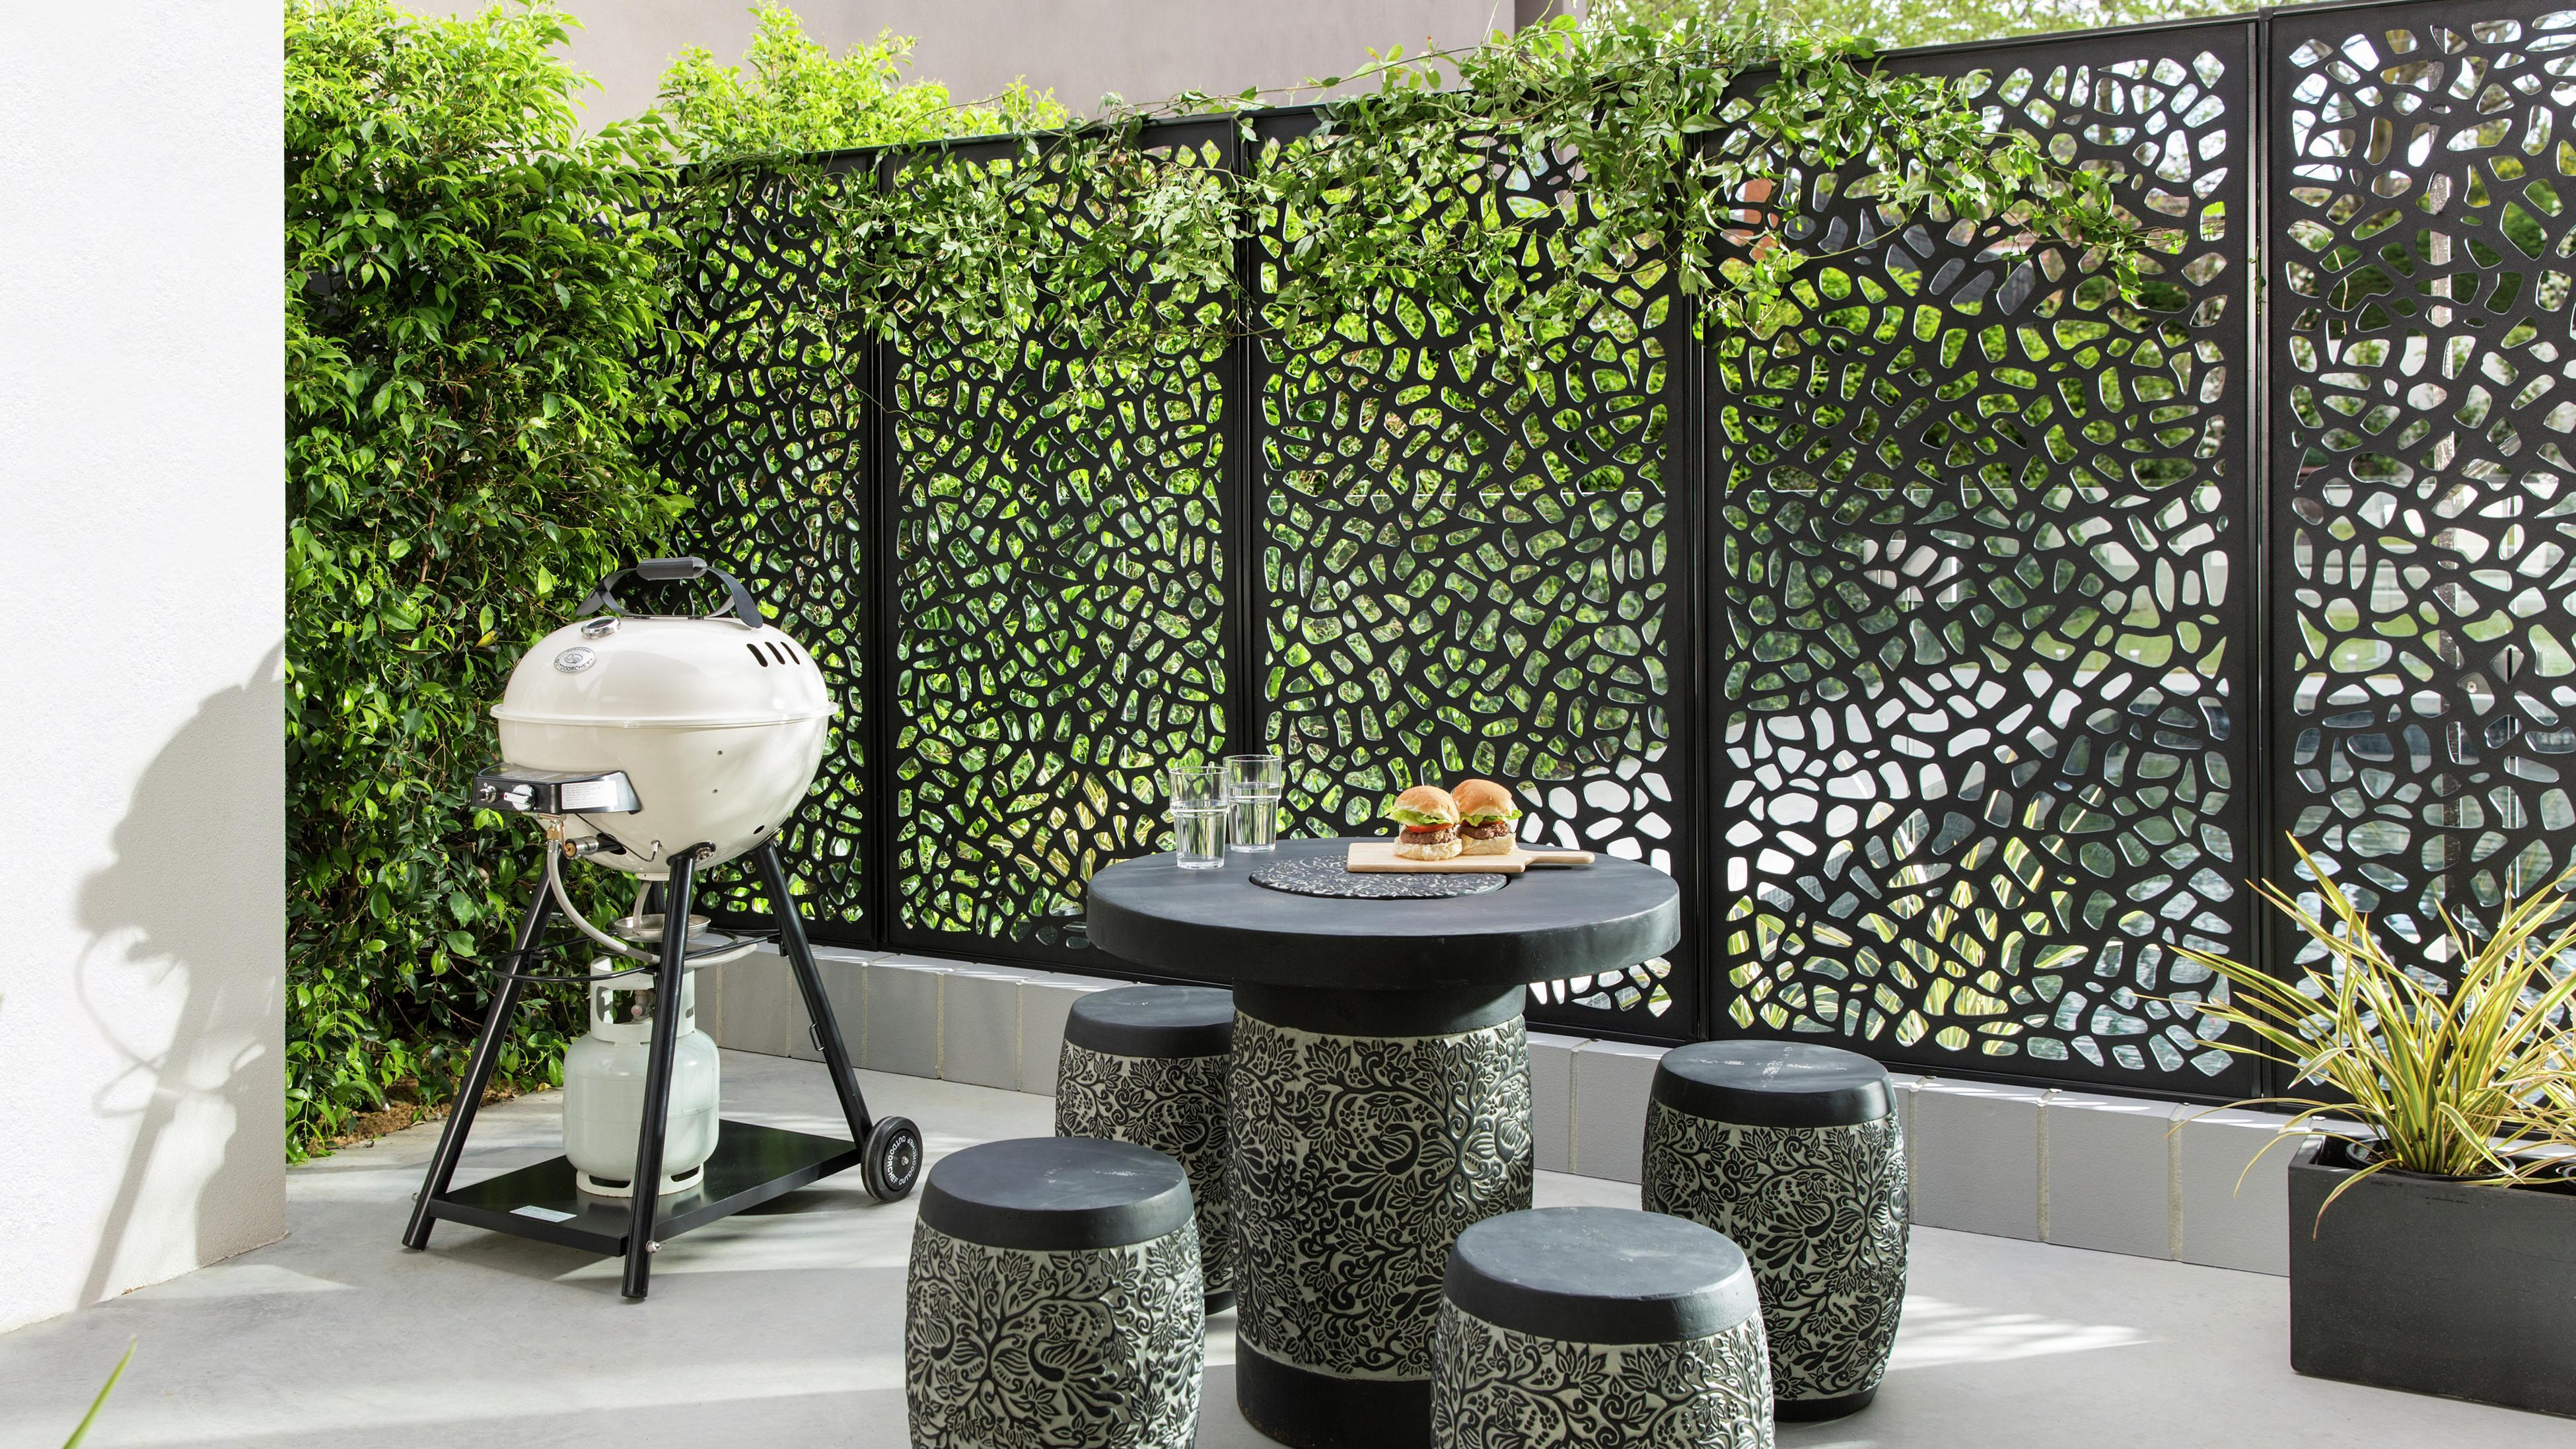 Outdoor dining setting with kettle BBQ, and plant-covered privacy screens.